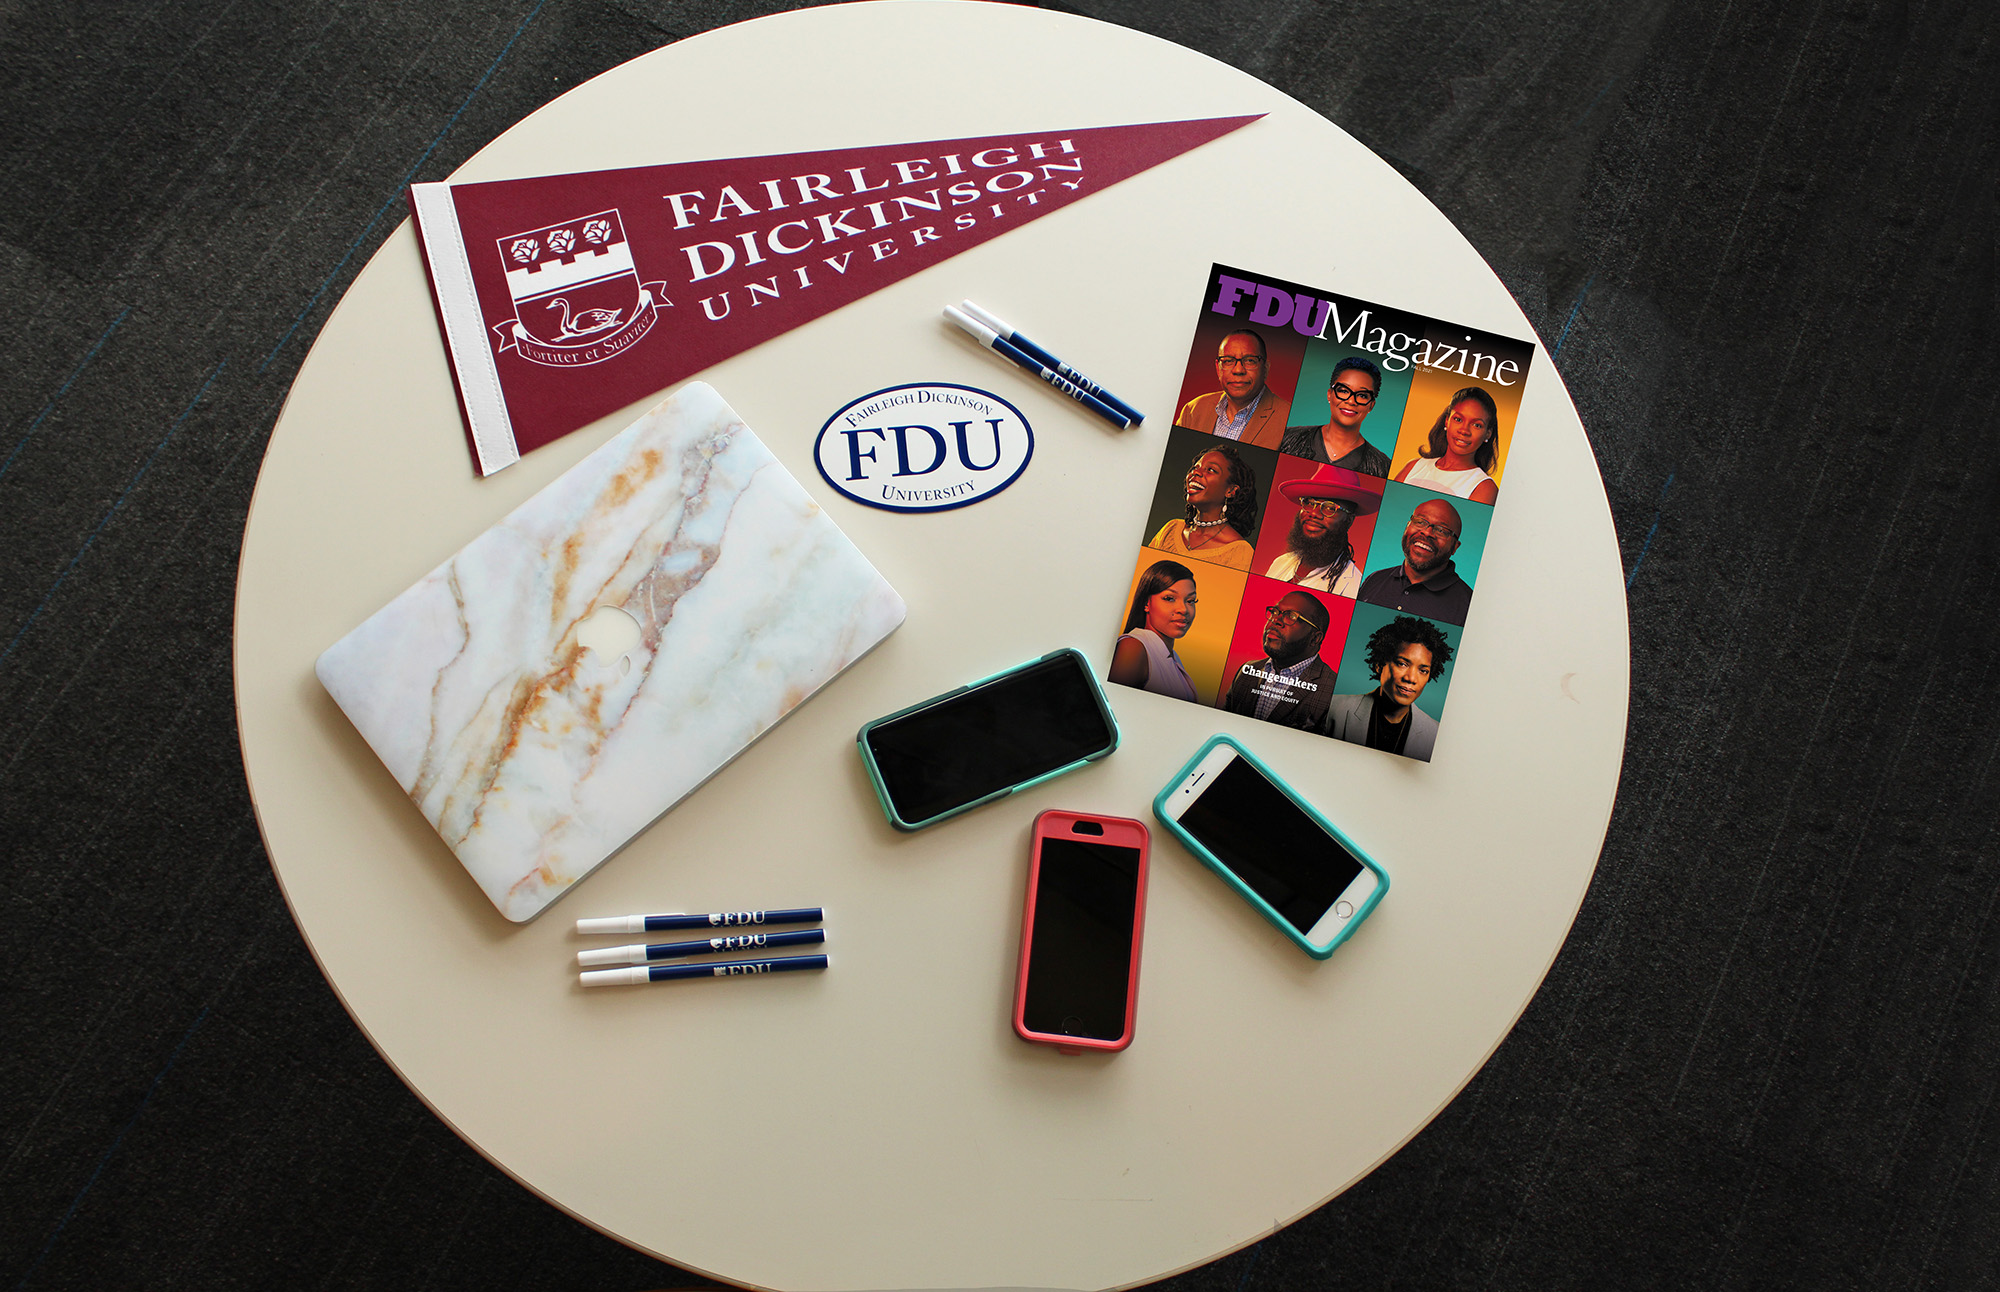 Still life of a table with an FDU pennant, a copy of FDU Magazine, three smartphones, a laptop and pens.